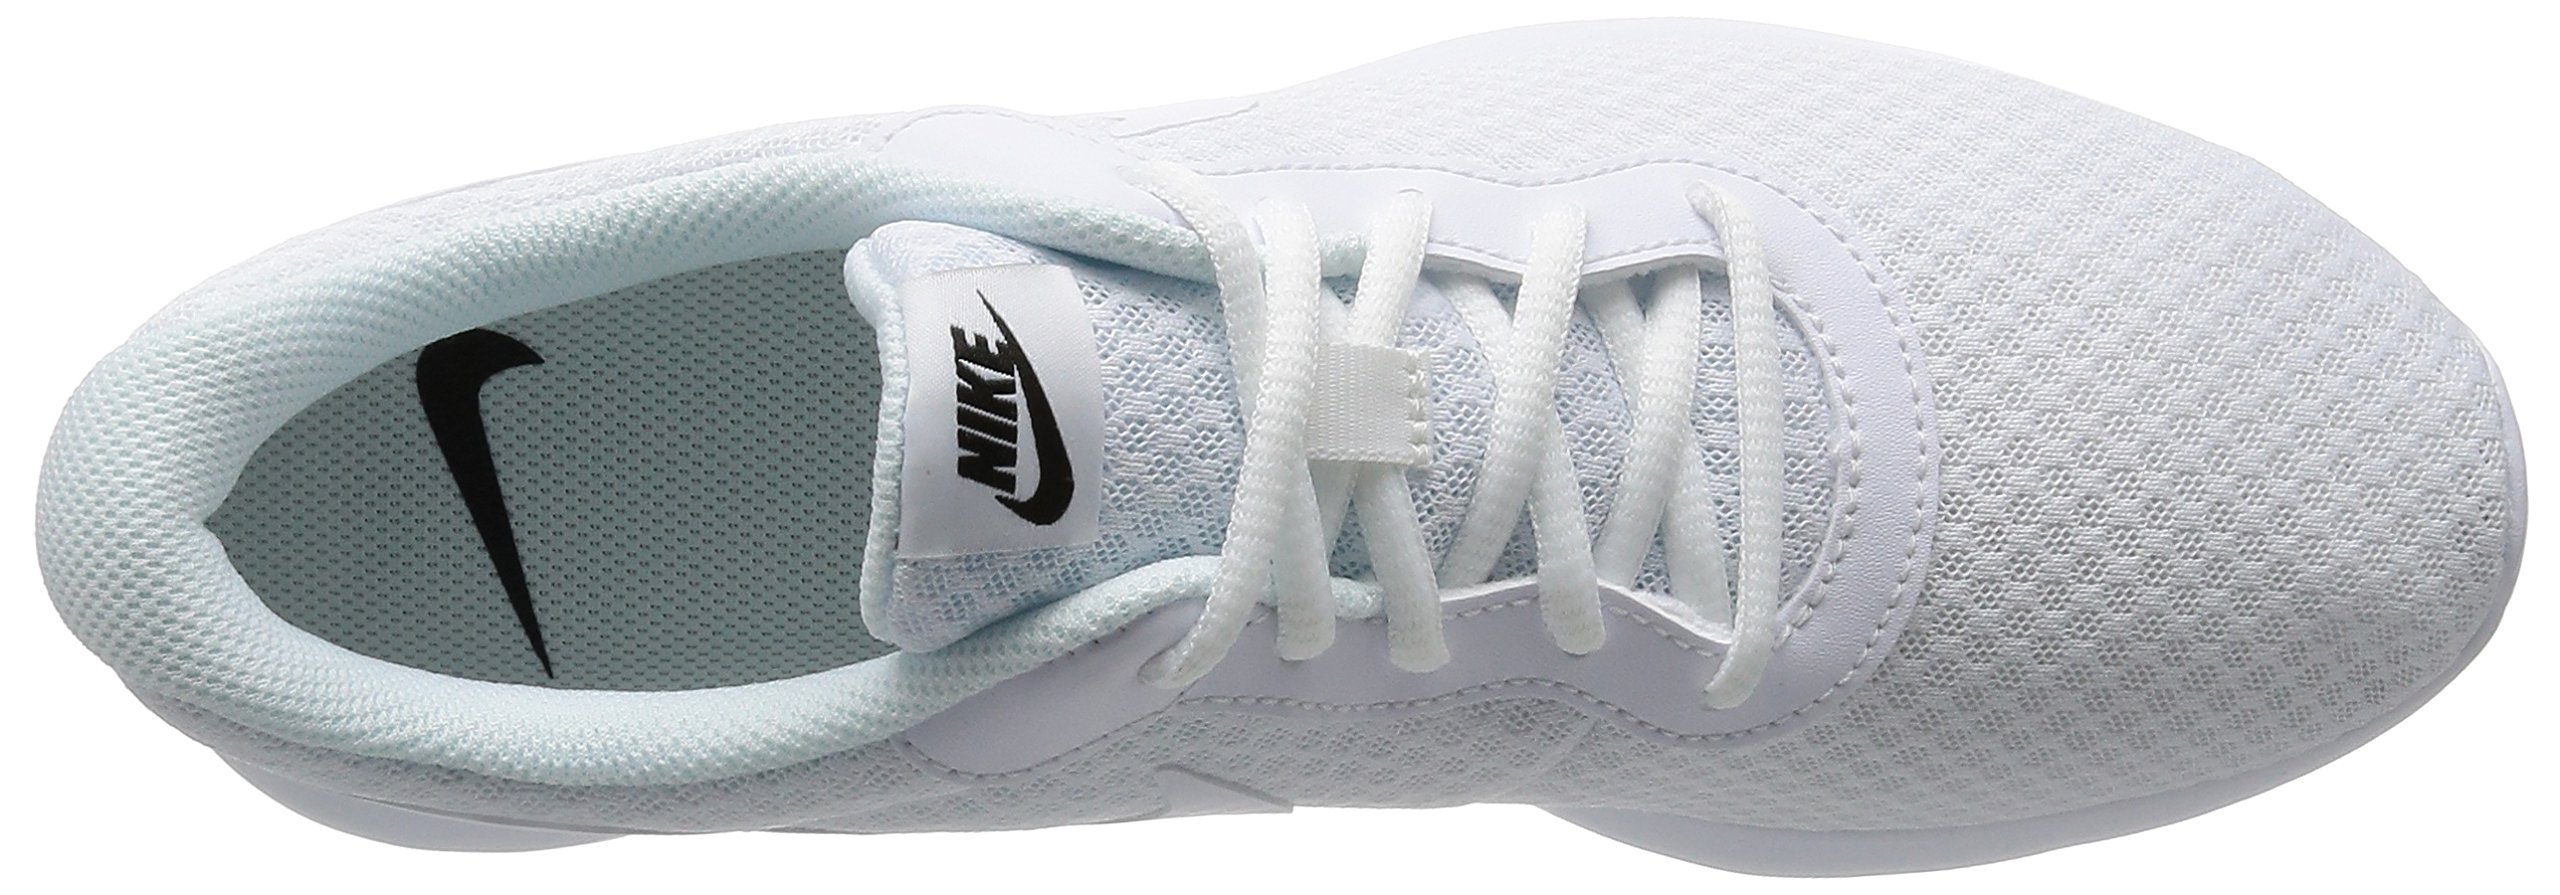 new product e667b c64c0 NIKE Mens Tanjun Running Shoes White Black 812654-110 Size 11.5 -  812654 110   Shoes   Clothing, Shoes   Jewelry - tibs